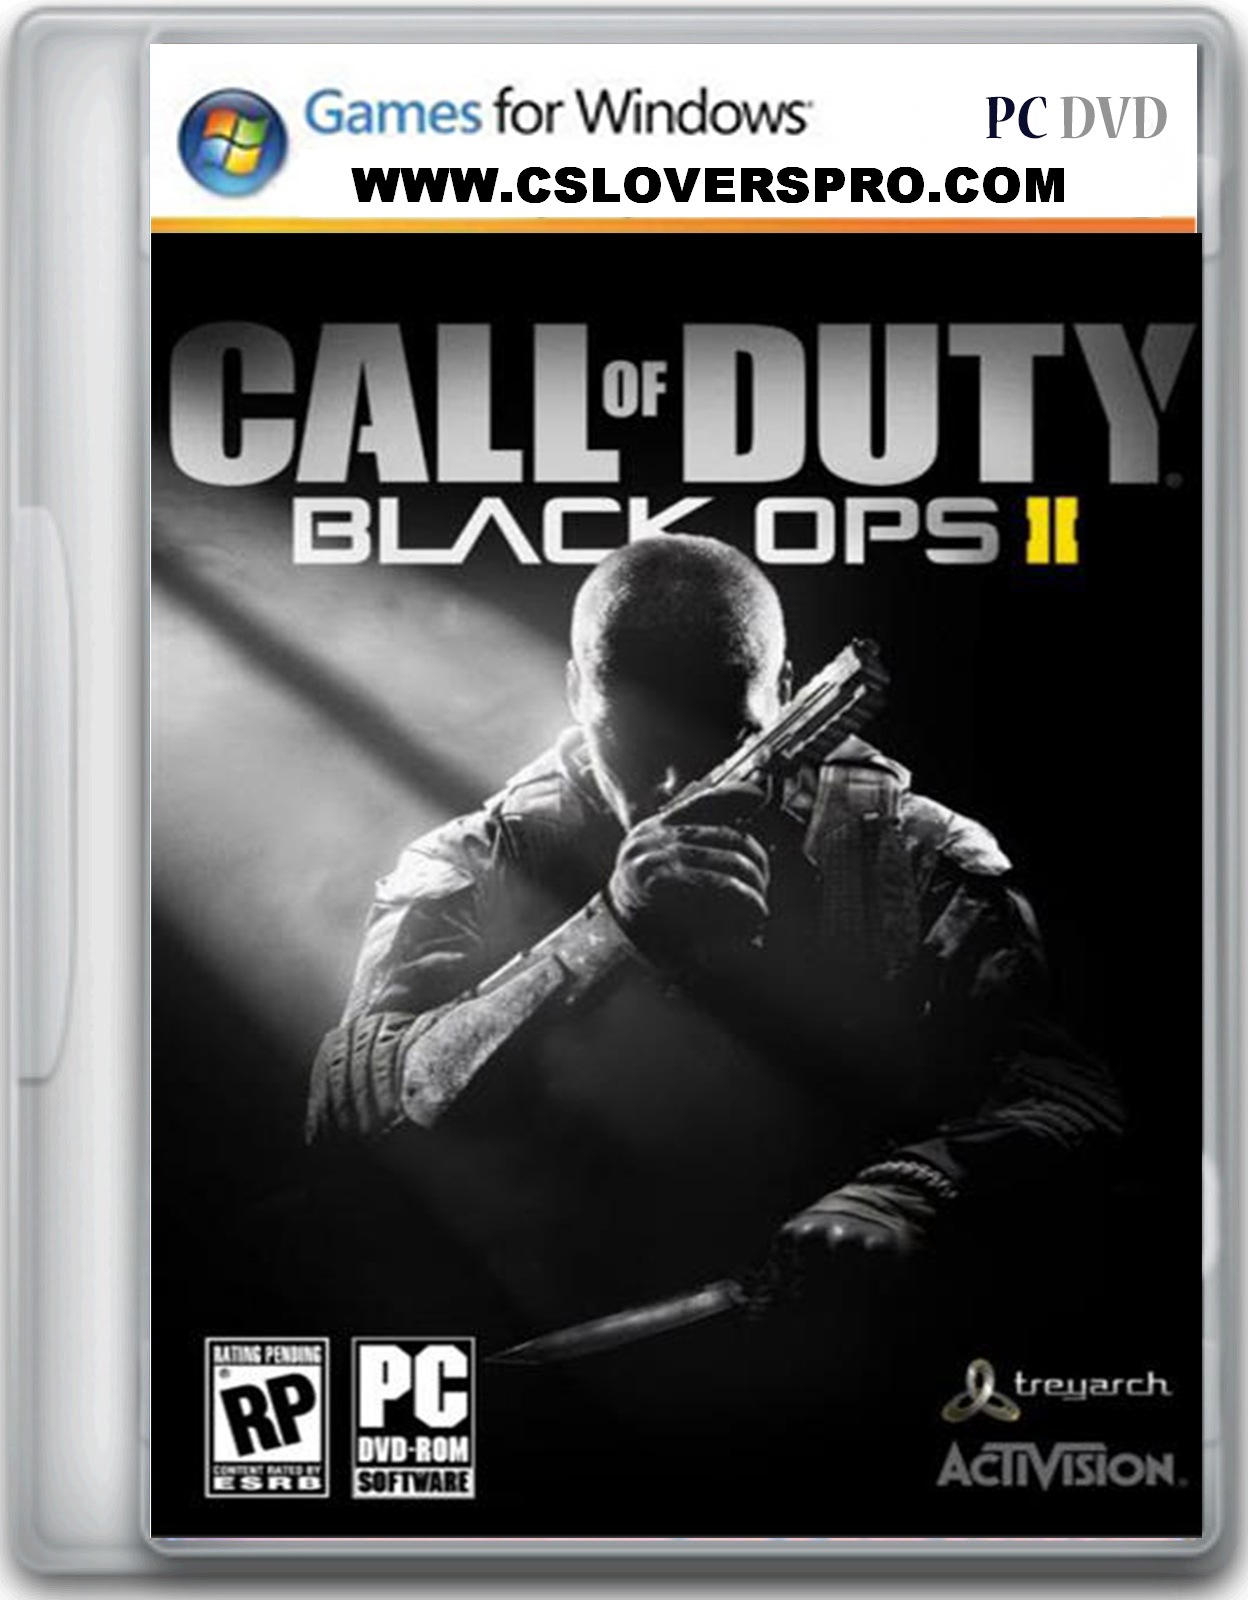 Call of Duty Black Ops 2 Full PC DVD Version Free Download